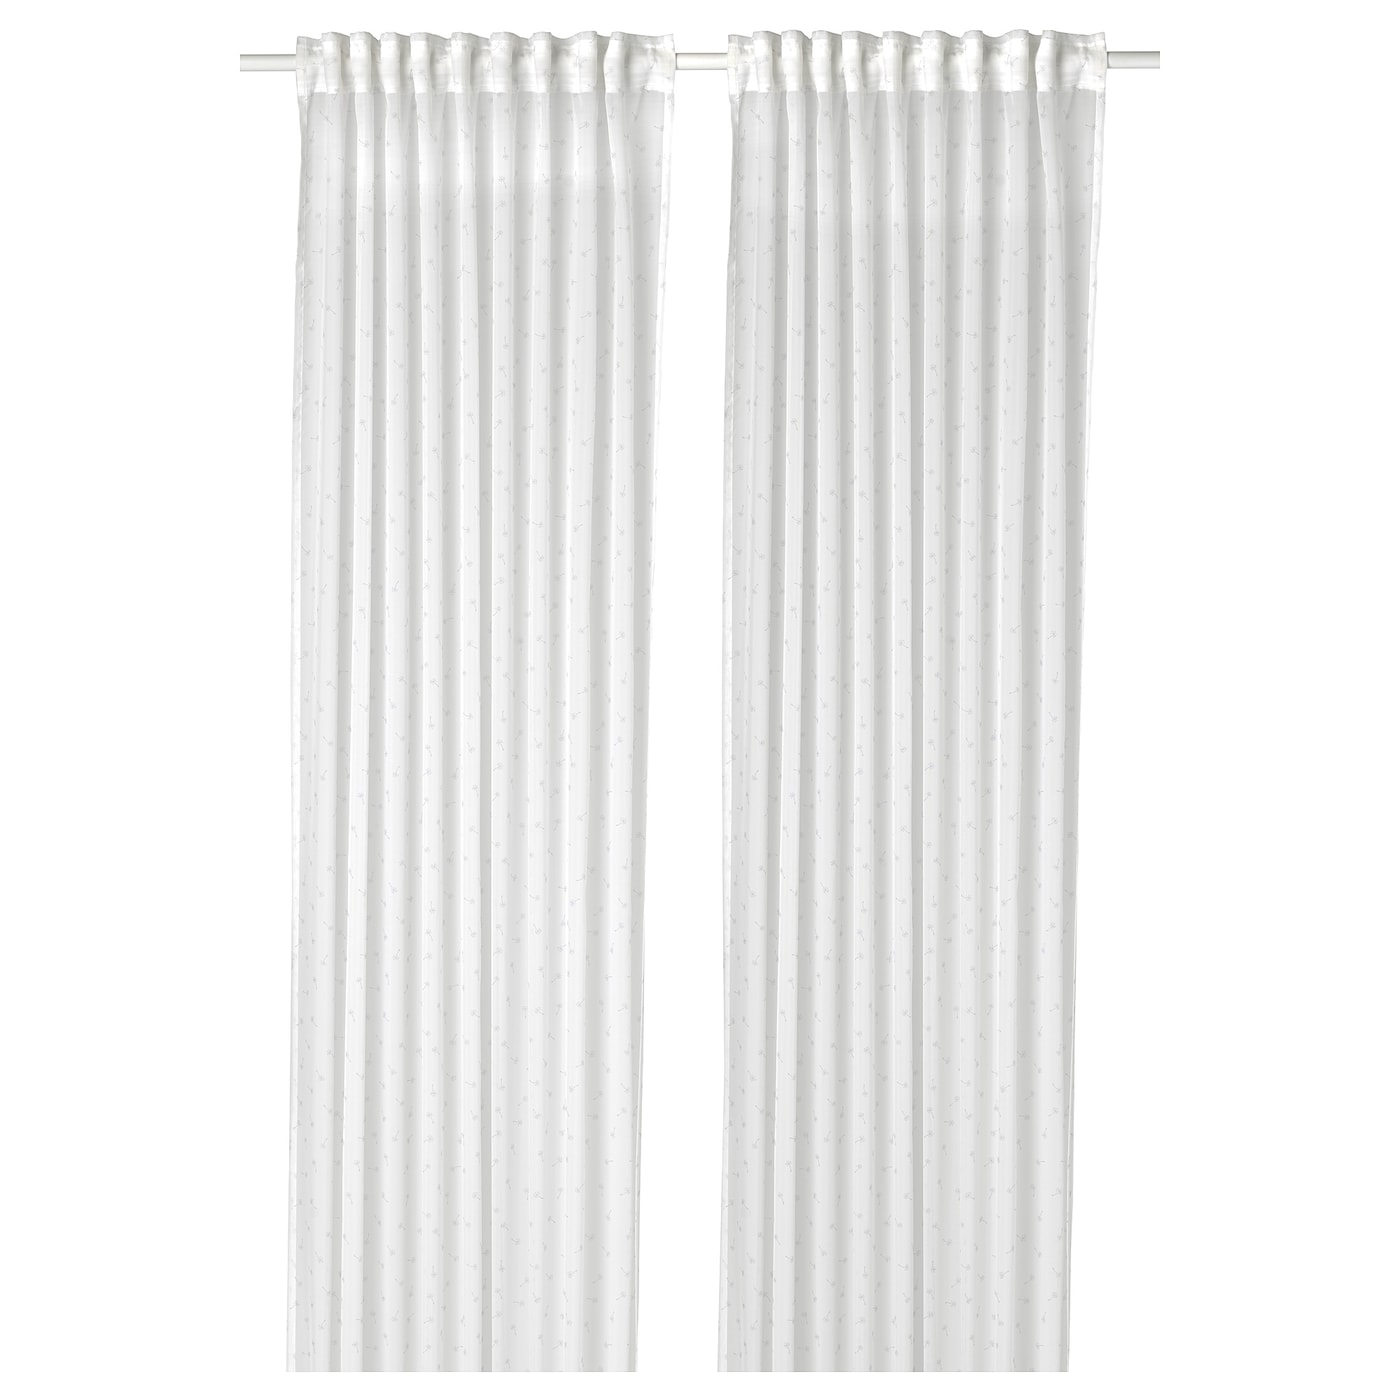 IKEA EMMYLINA sheer curtains, 1 pair The curtains can be used on a curtain rod or a curtain track.